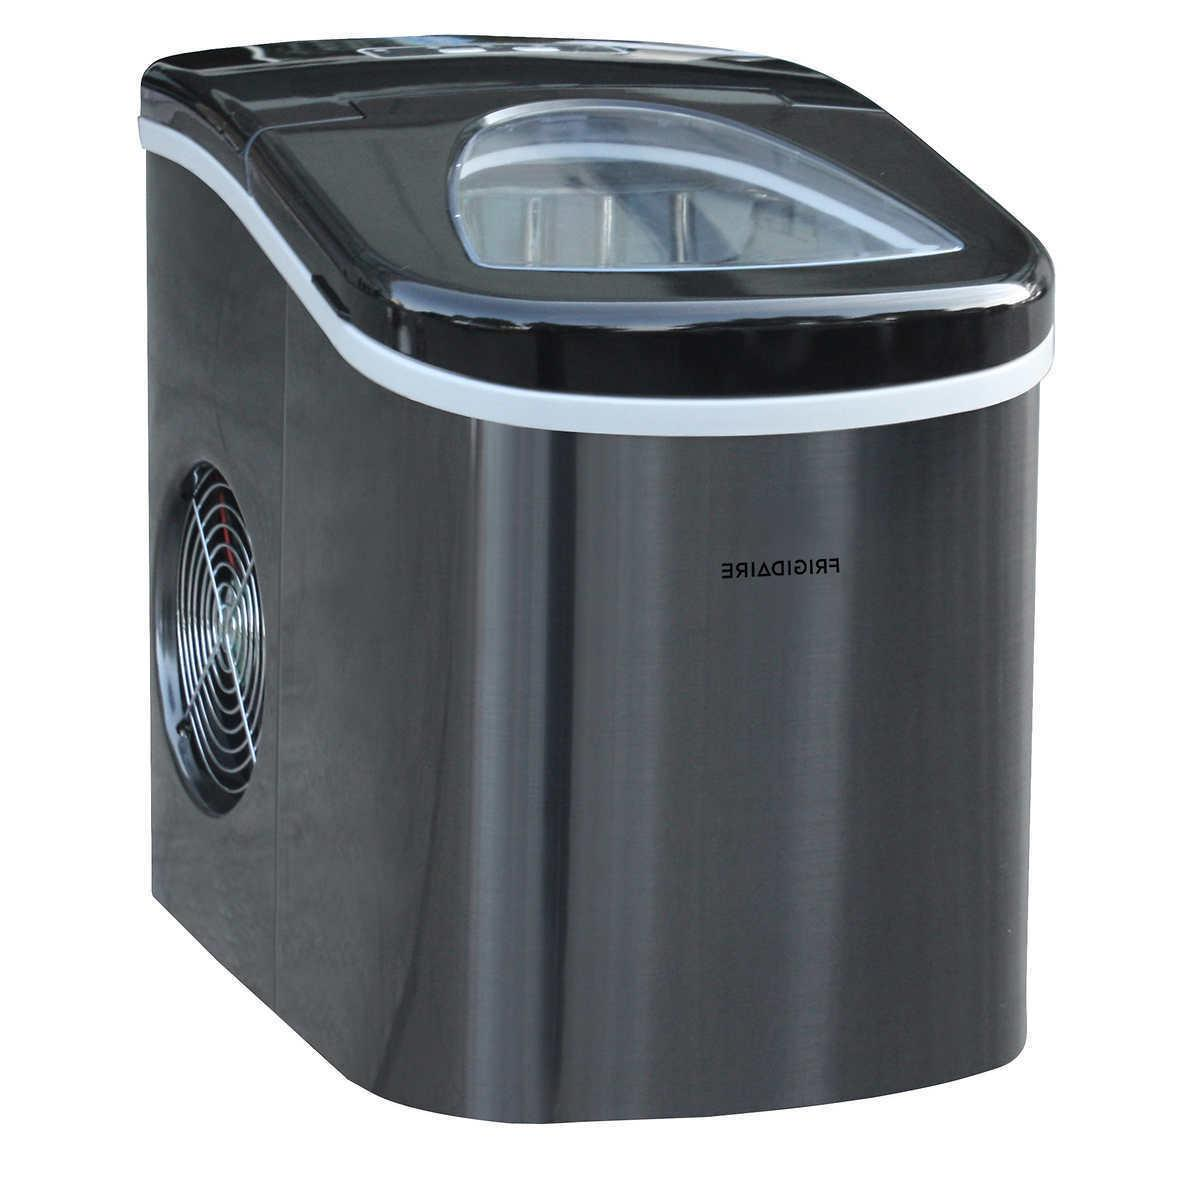 portable ice maker compact quiet self cleaning